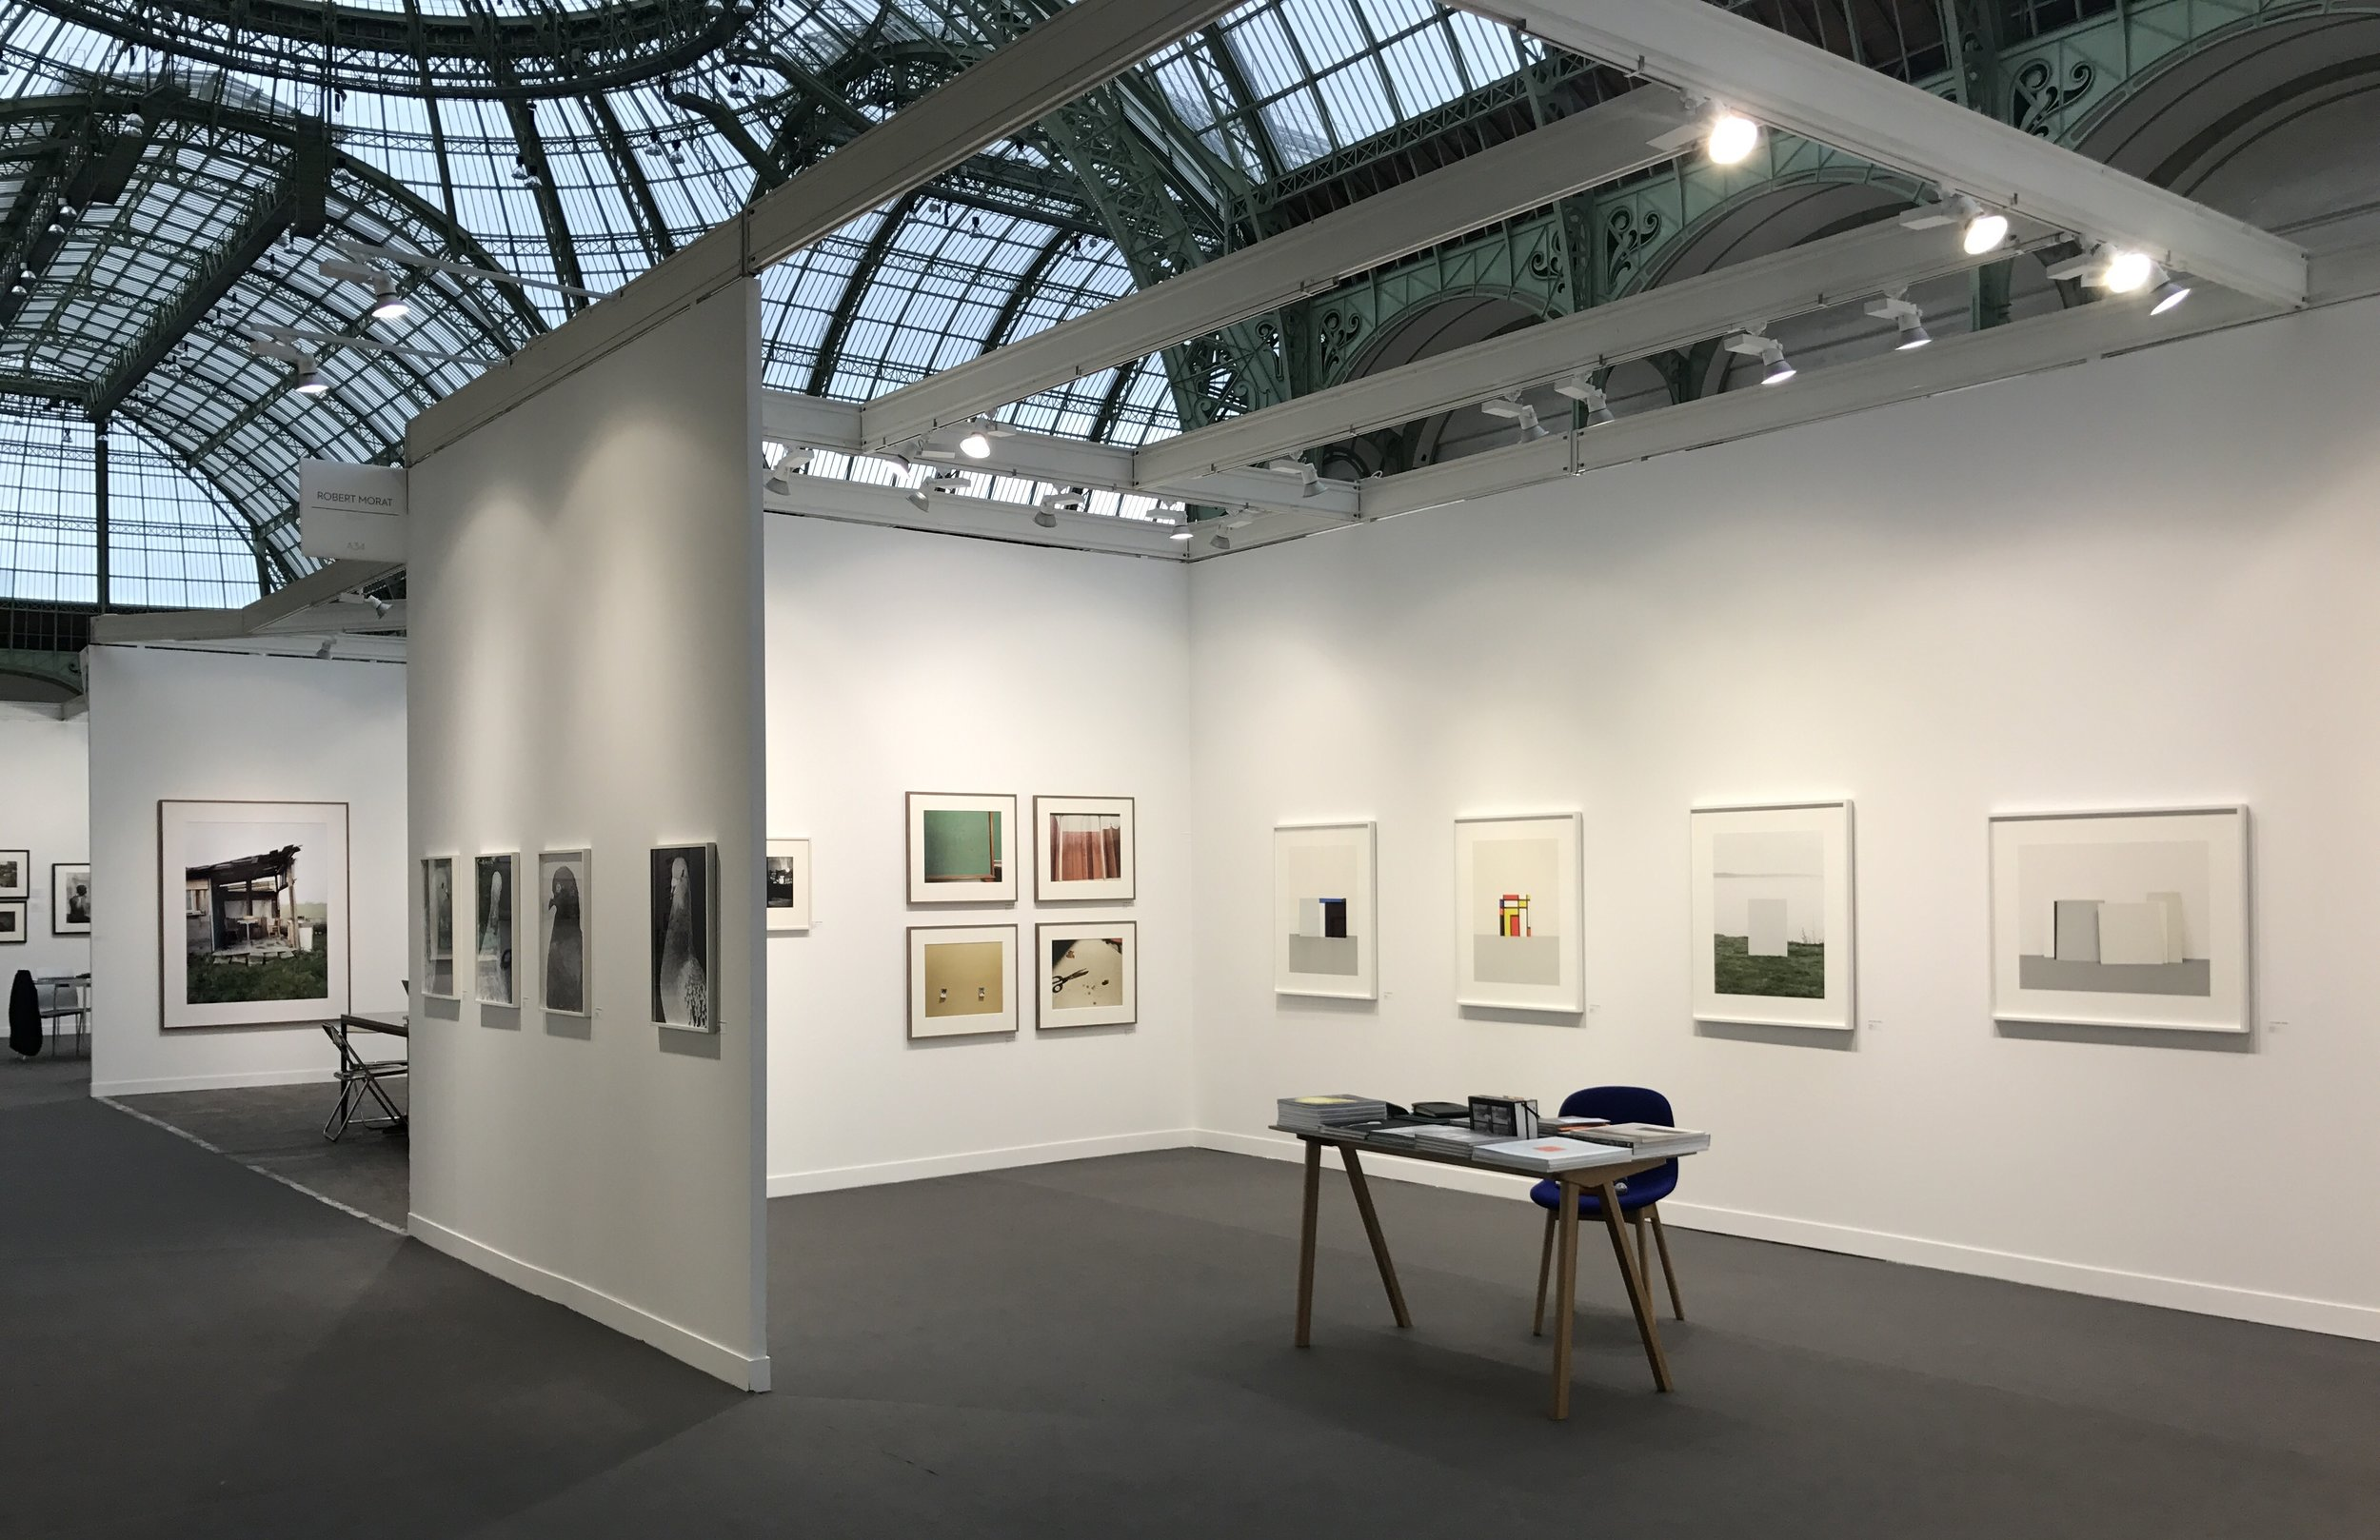 Installation view of Galerie Robert Morat, Berlin